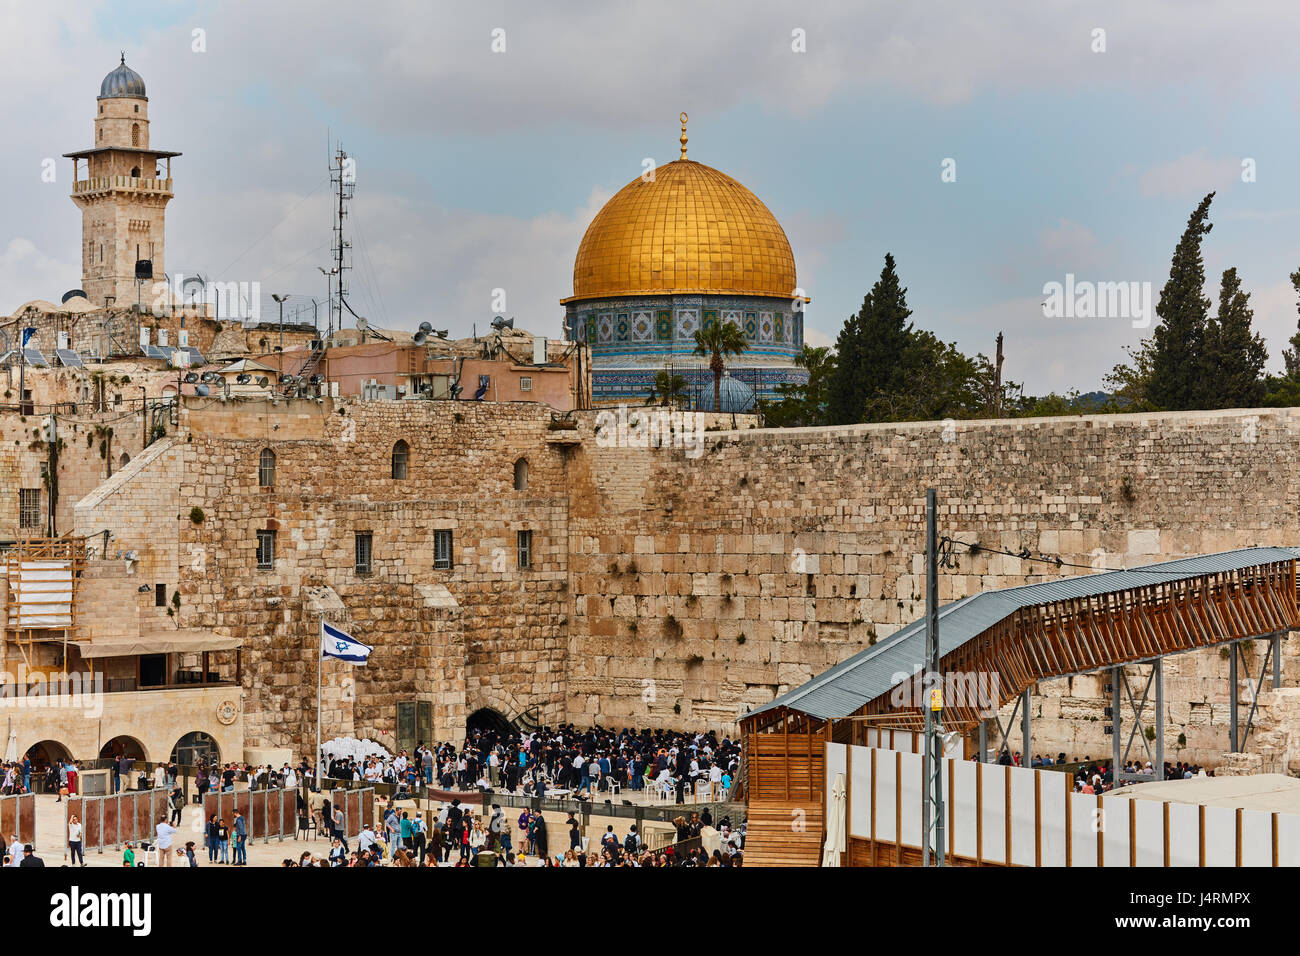 Wailing wall and al aqsa mosque in Jerusalem - Stock Image